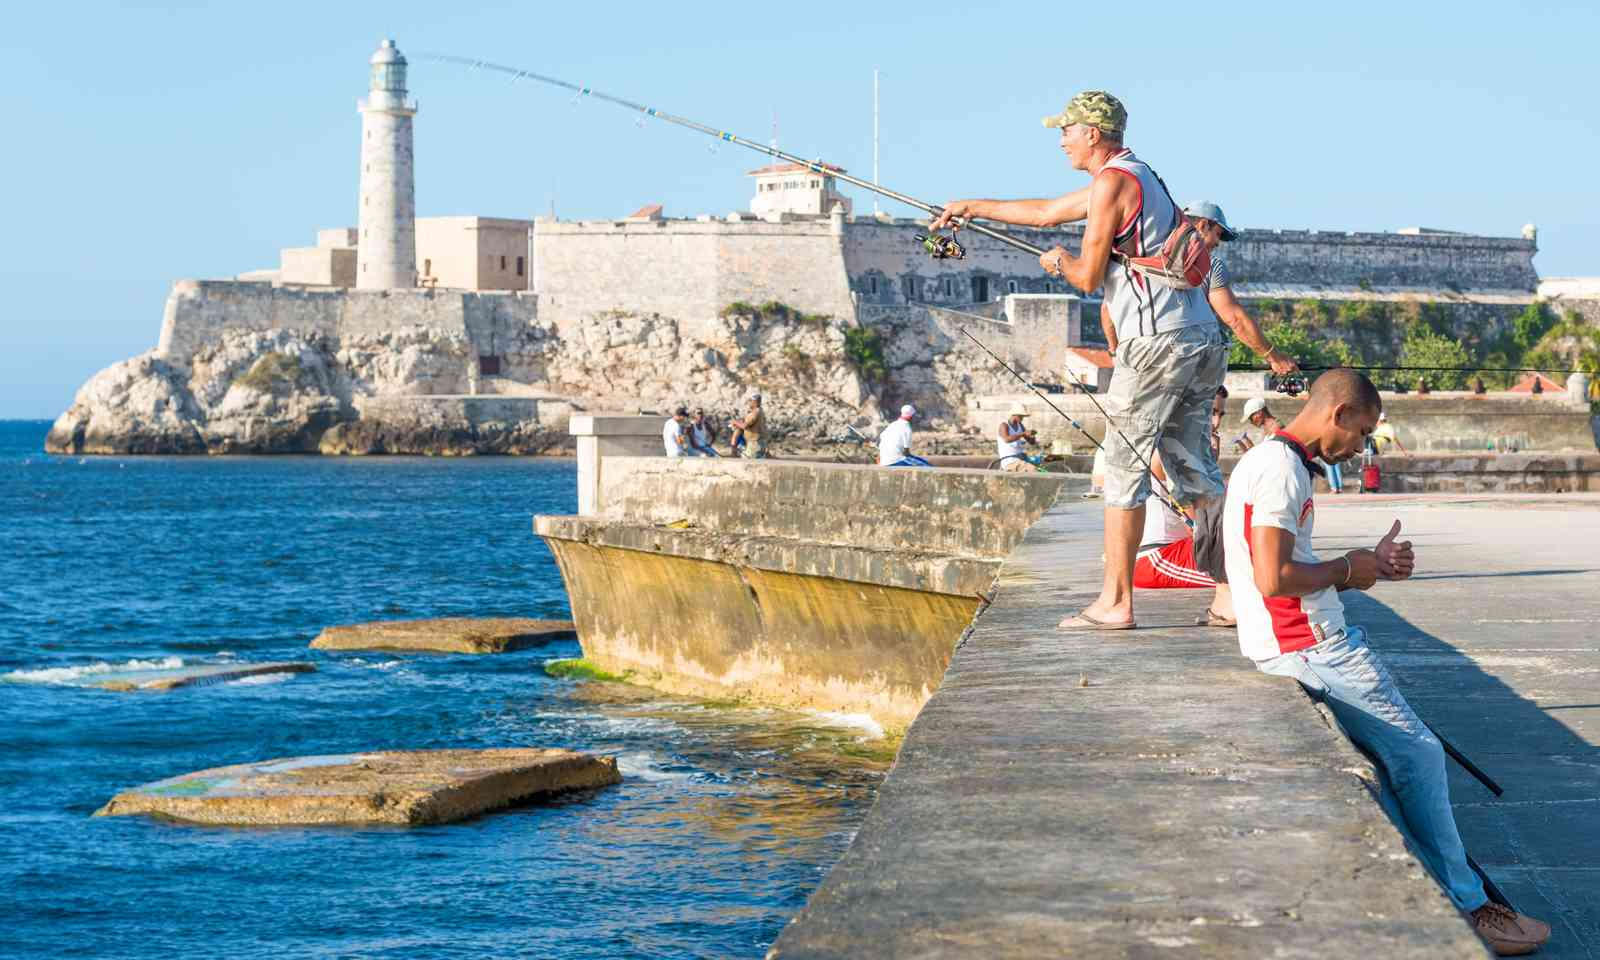 Fishing near El Morro castle, Havana (Dreamstime.com)